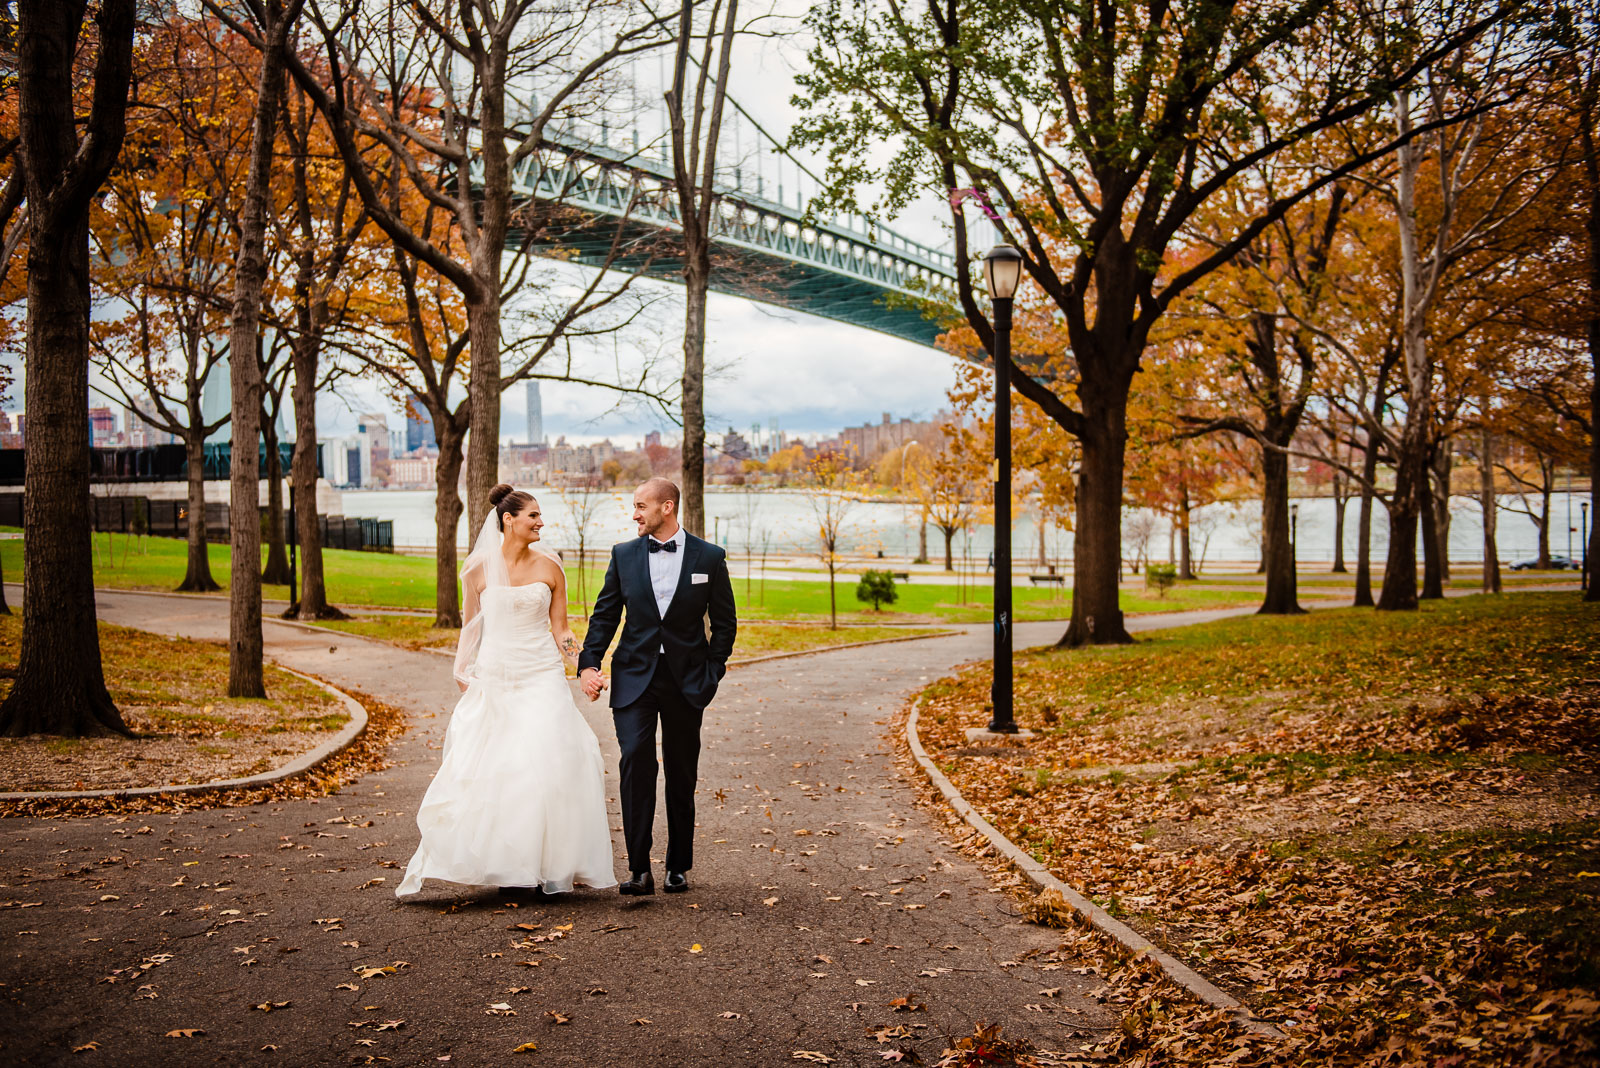 Bride's and groom walking in Astoria Park in Queens